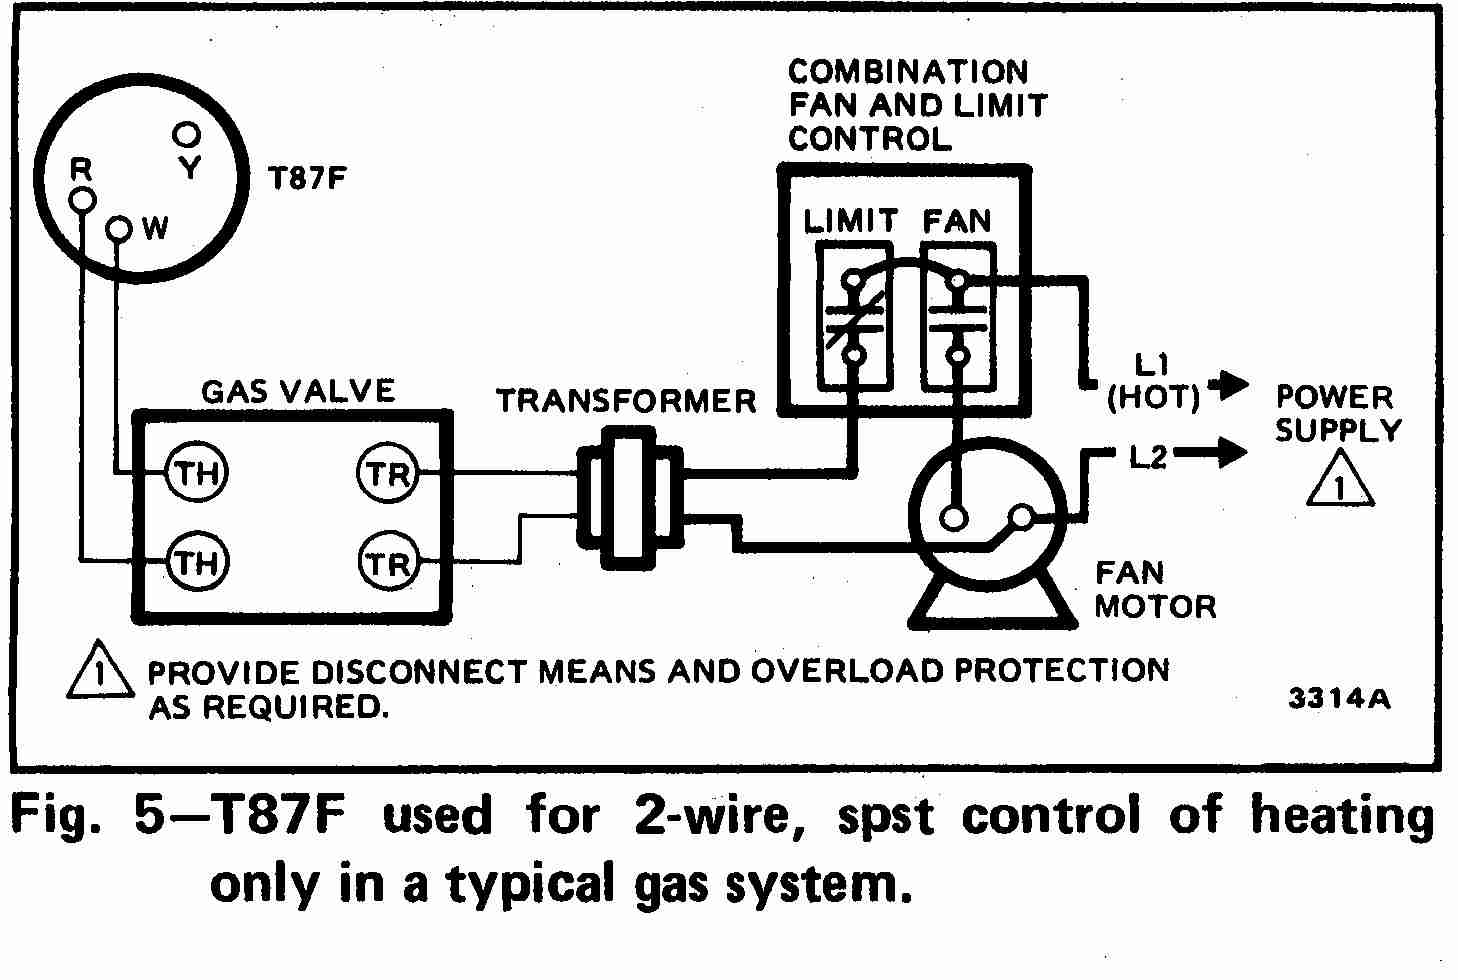 TT_T87F_0002_2Wg_DJF dayton thermostat wiring diagram rv furnace wiring diagrams LuxPro Thermostat Manual at gsmx.co